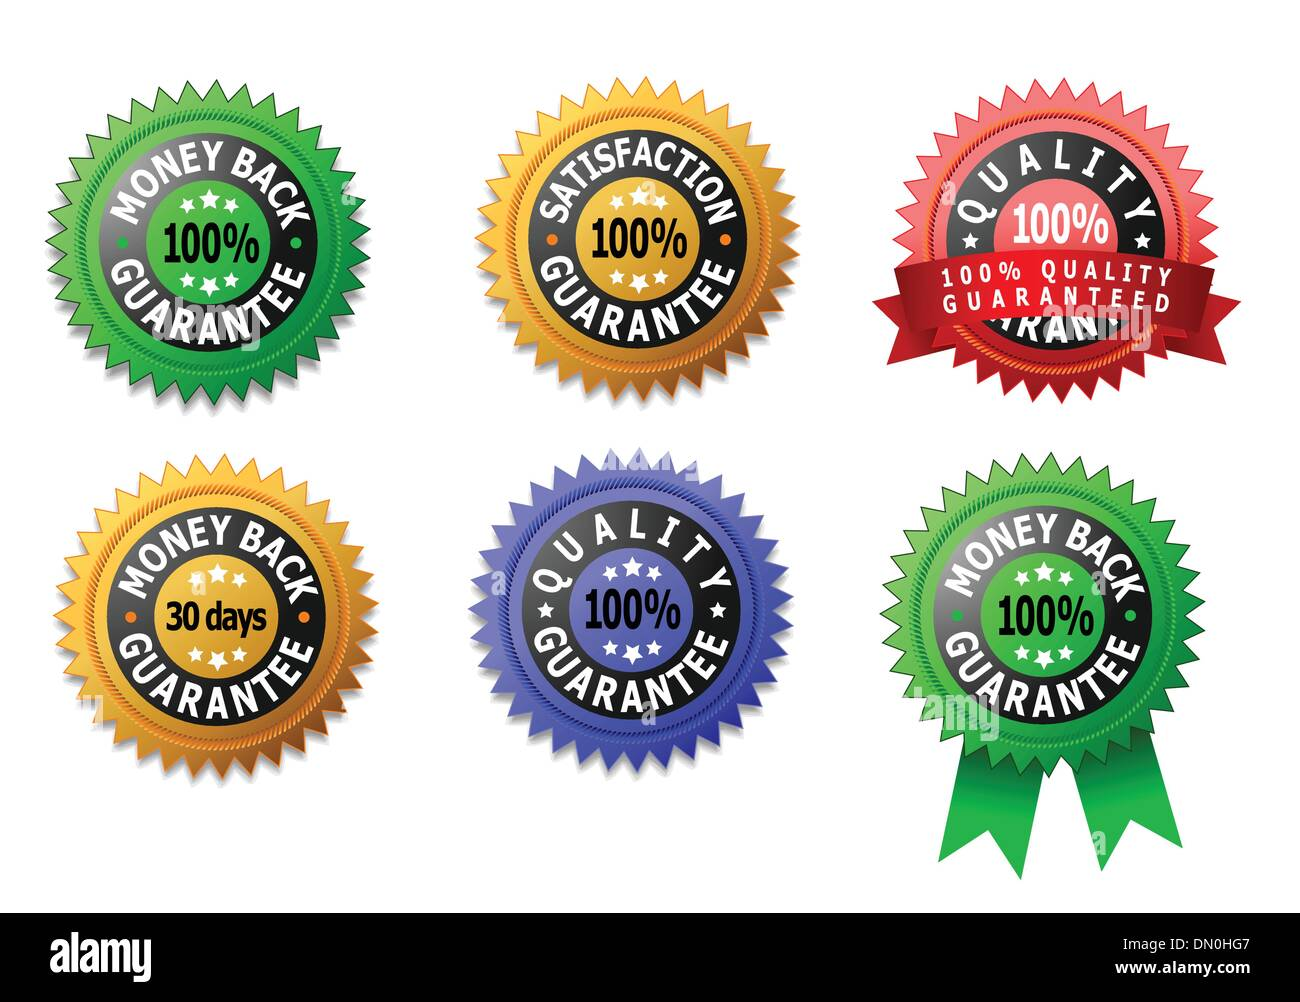 Vector labels for satisfaction, quality and money back guarantee - Stock Image